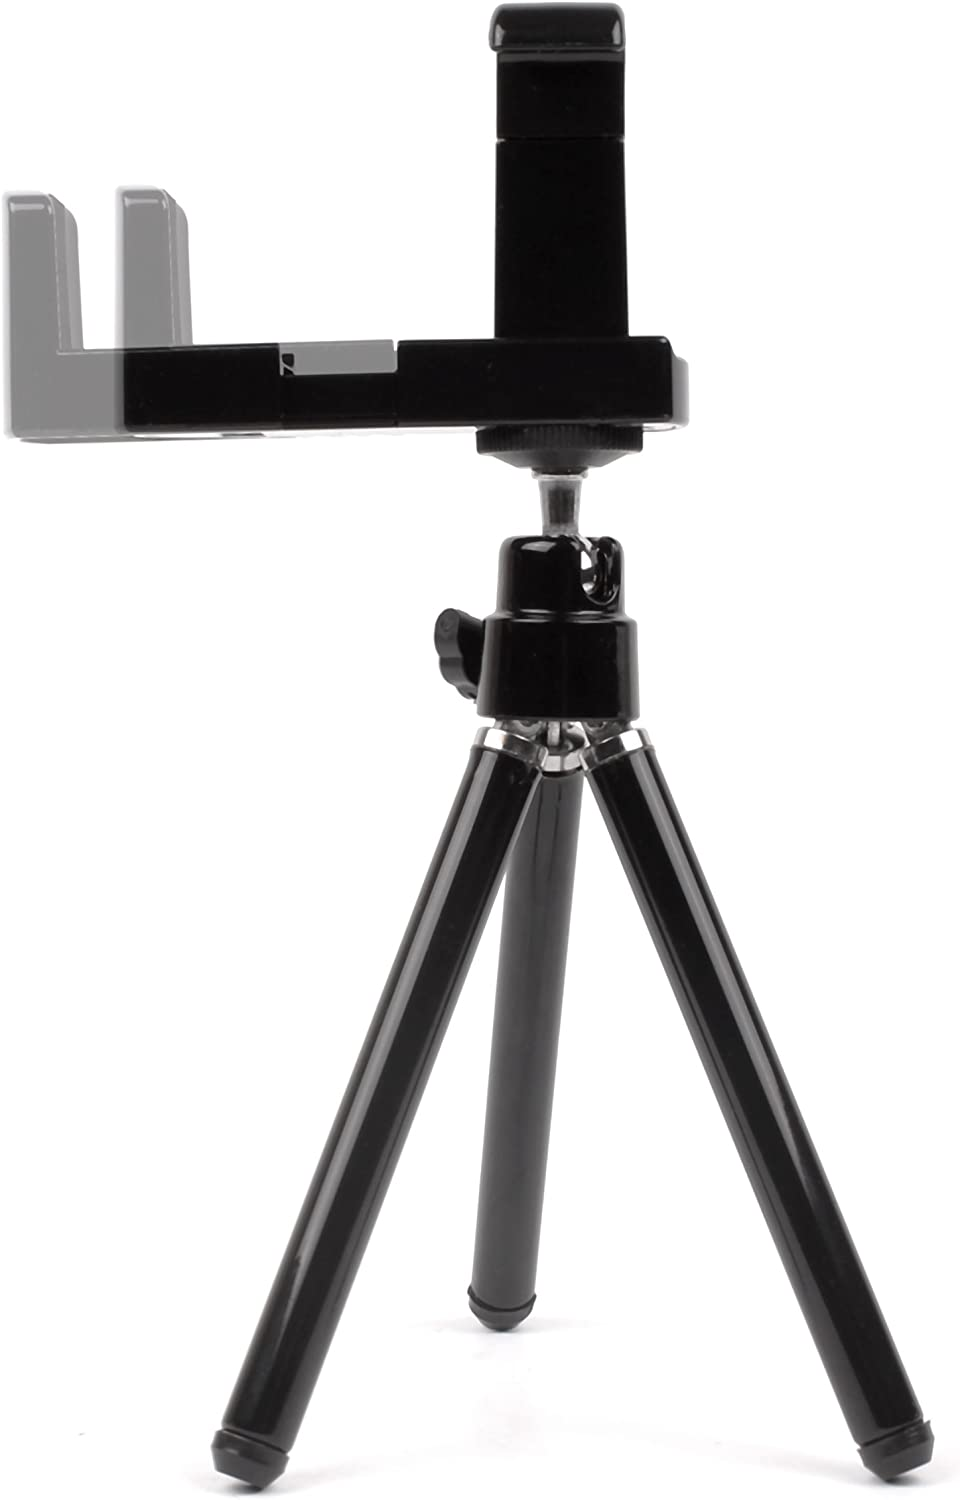 PL170 Compatible with Samsung EX1 PL20 /& PL210 DURAGADGET 2-in-1 Extendable Travel Tripod PL120